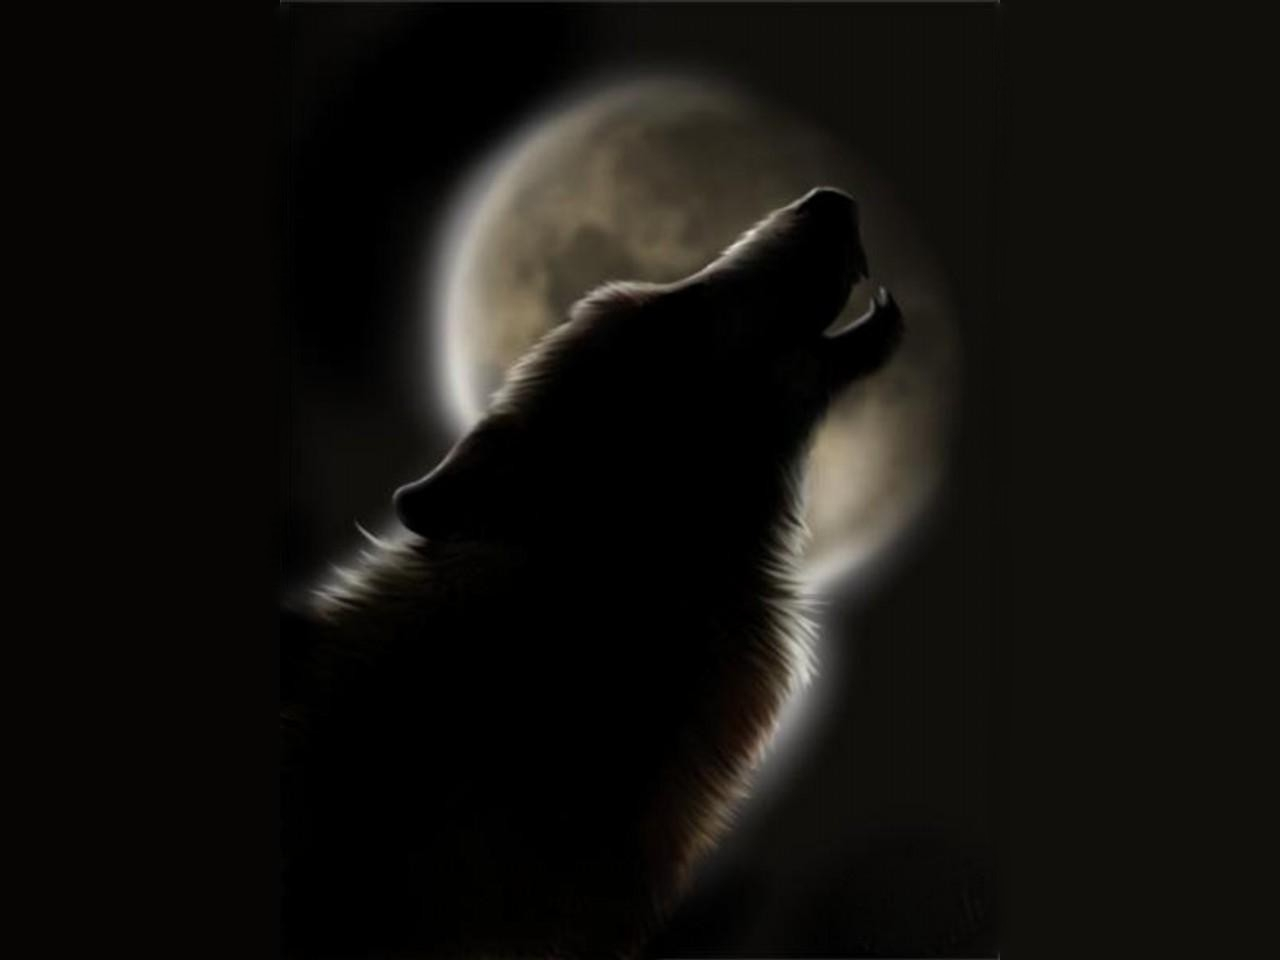 Howling Wolf Wallpapers Wolves Howling Quotes 369900 Hd